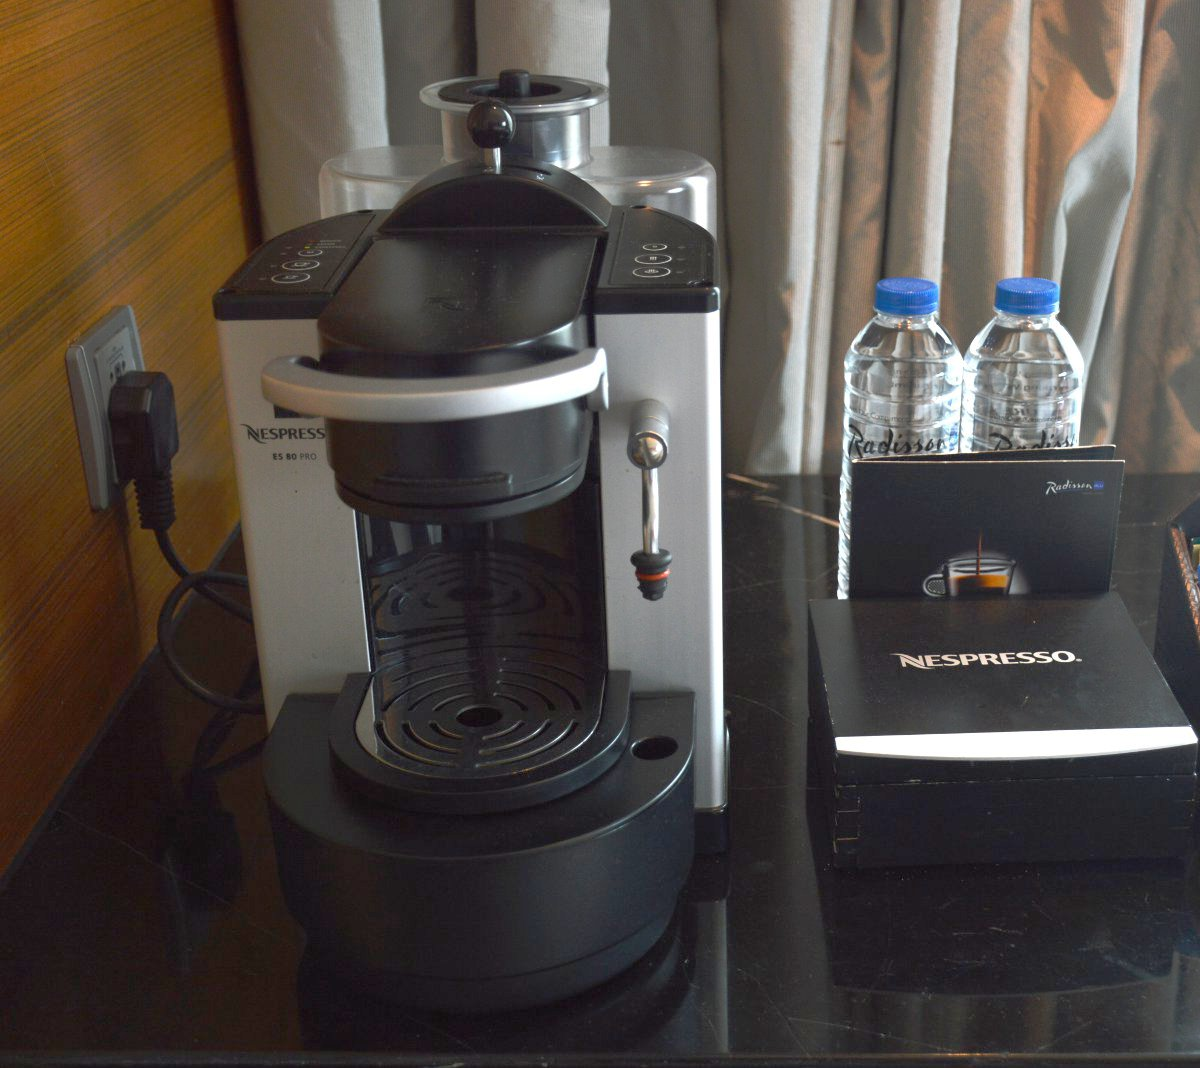 Nespresso machine Radisson Blu Cebu Double-Barrelled Travel